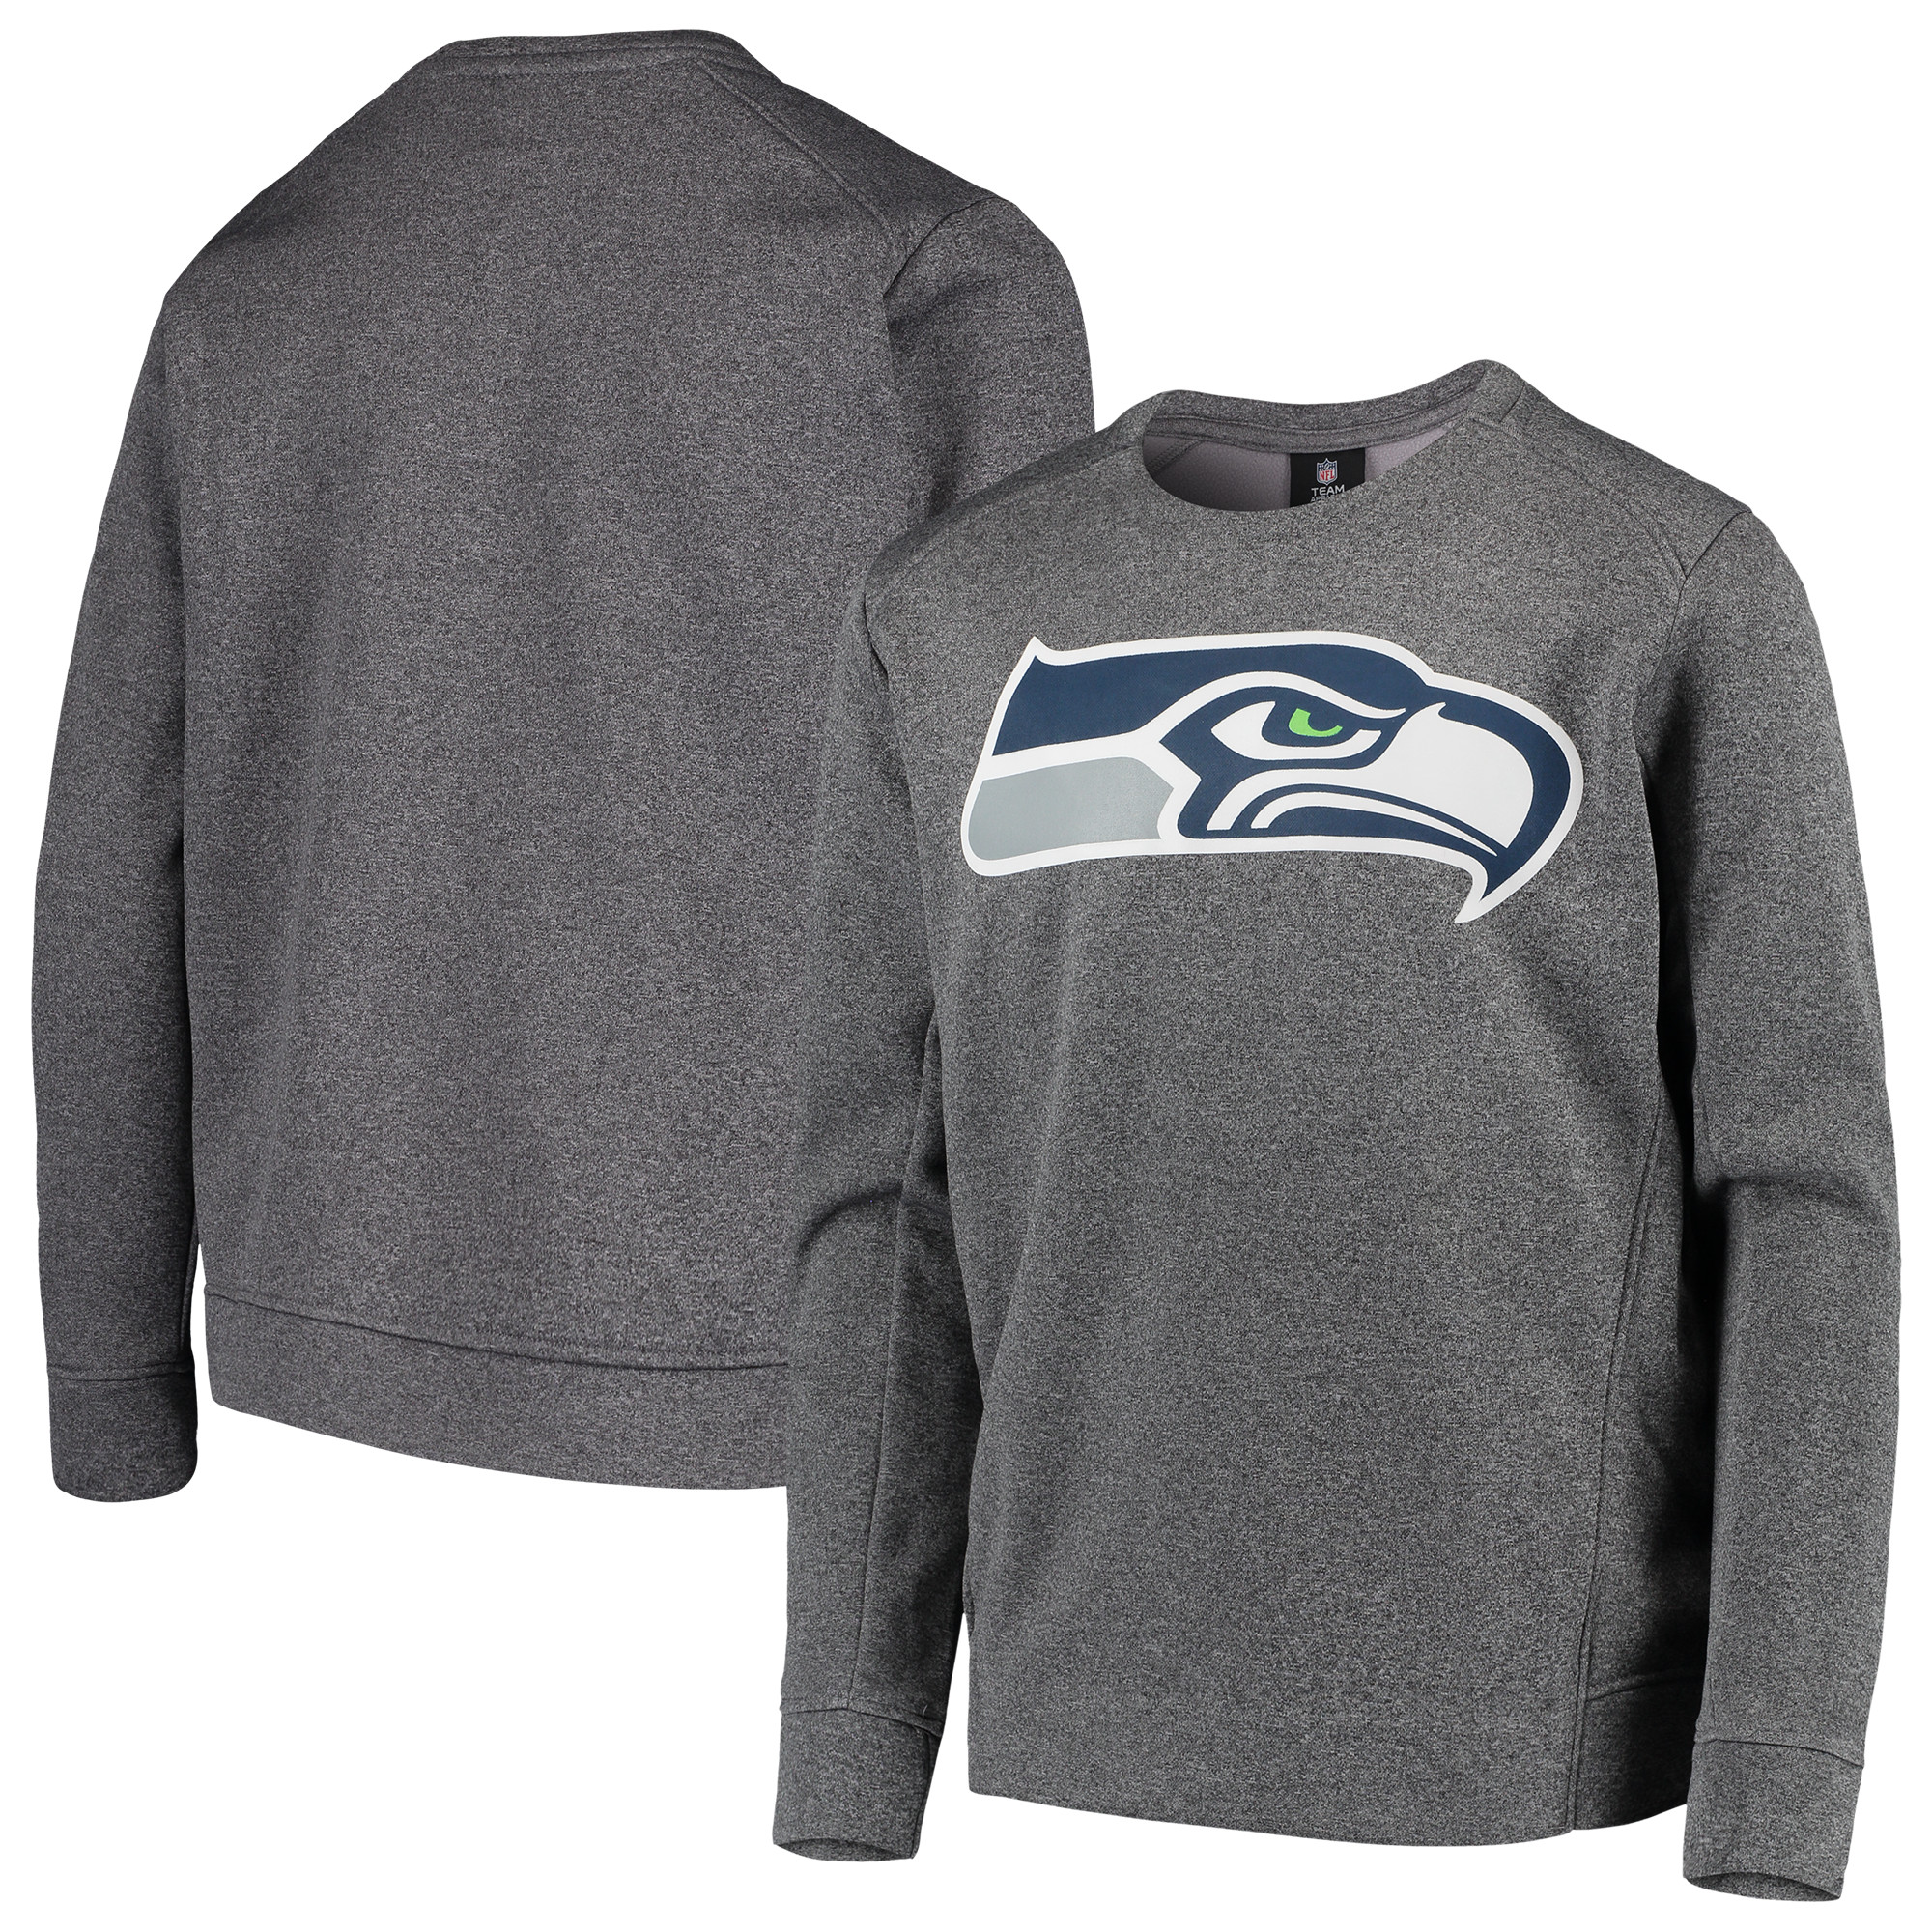 Seattle Seahawks Nike Youth Fleece Crew Sweatshirt - Heathered Gray